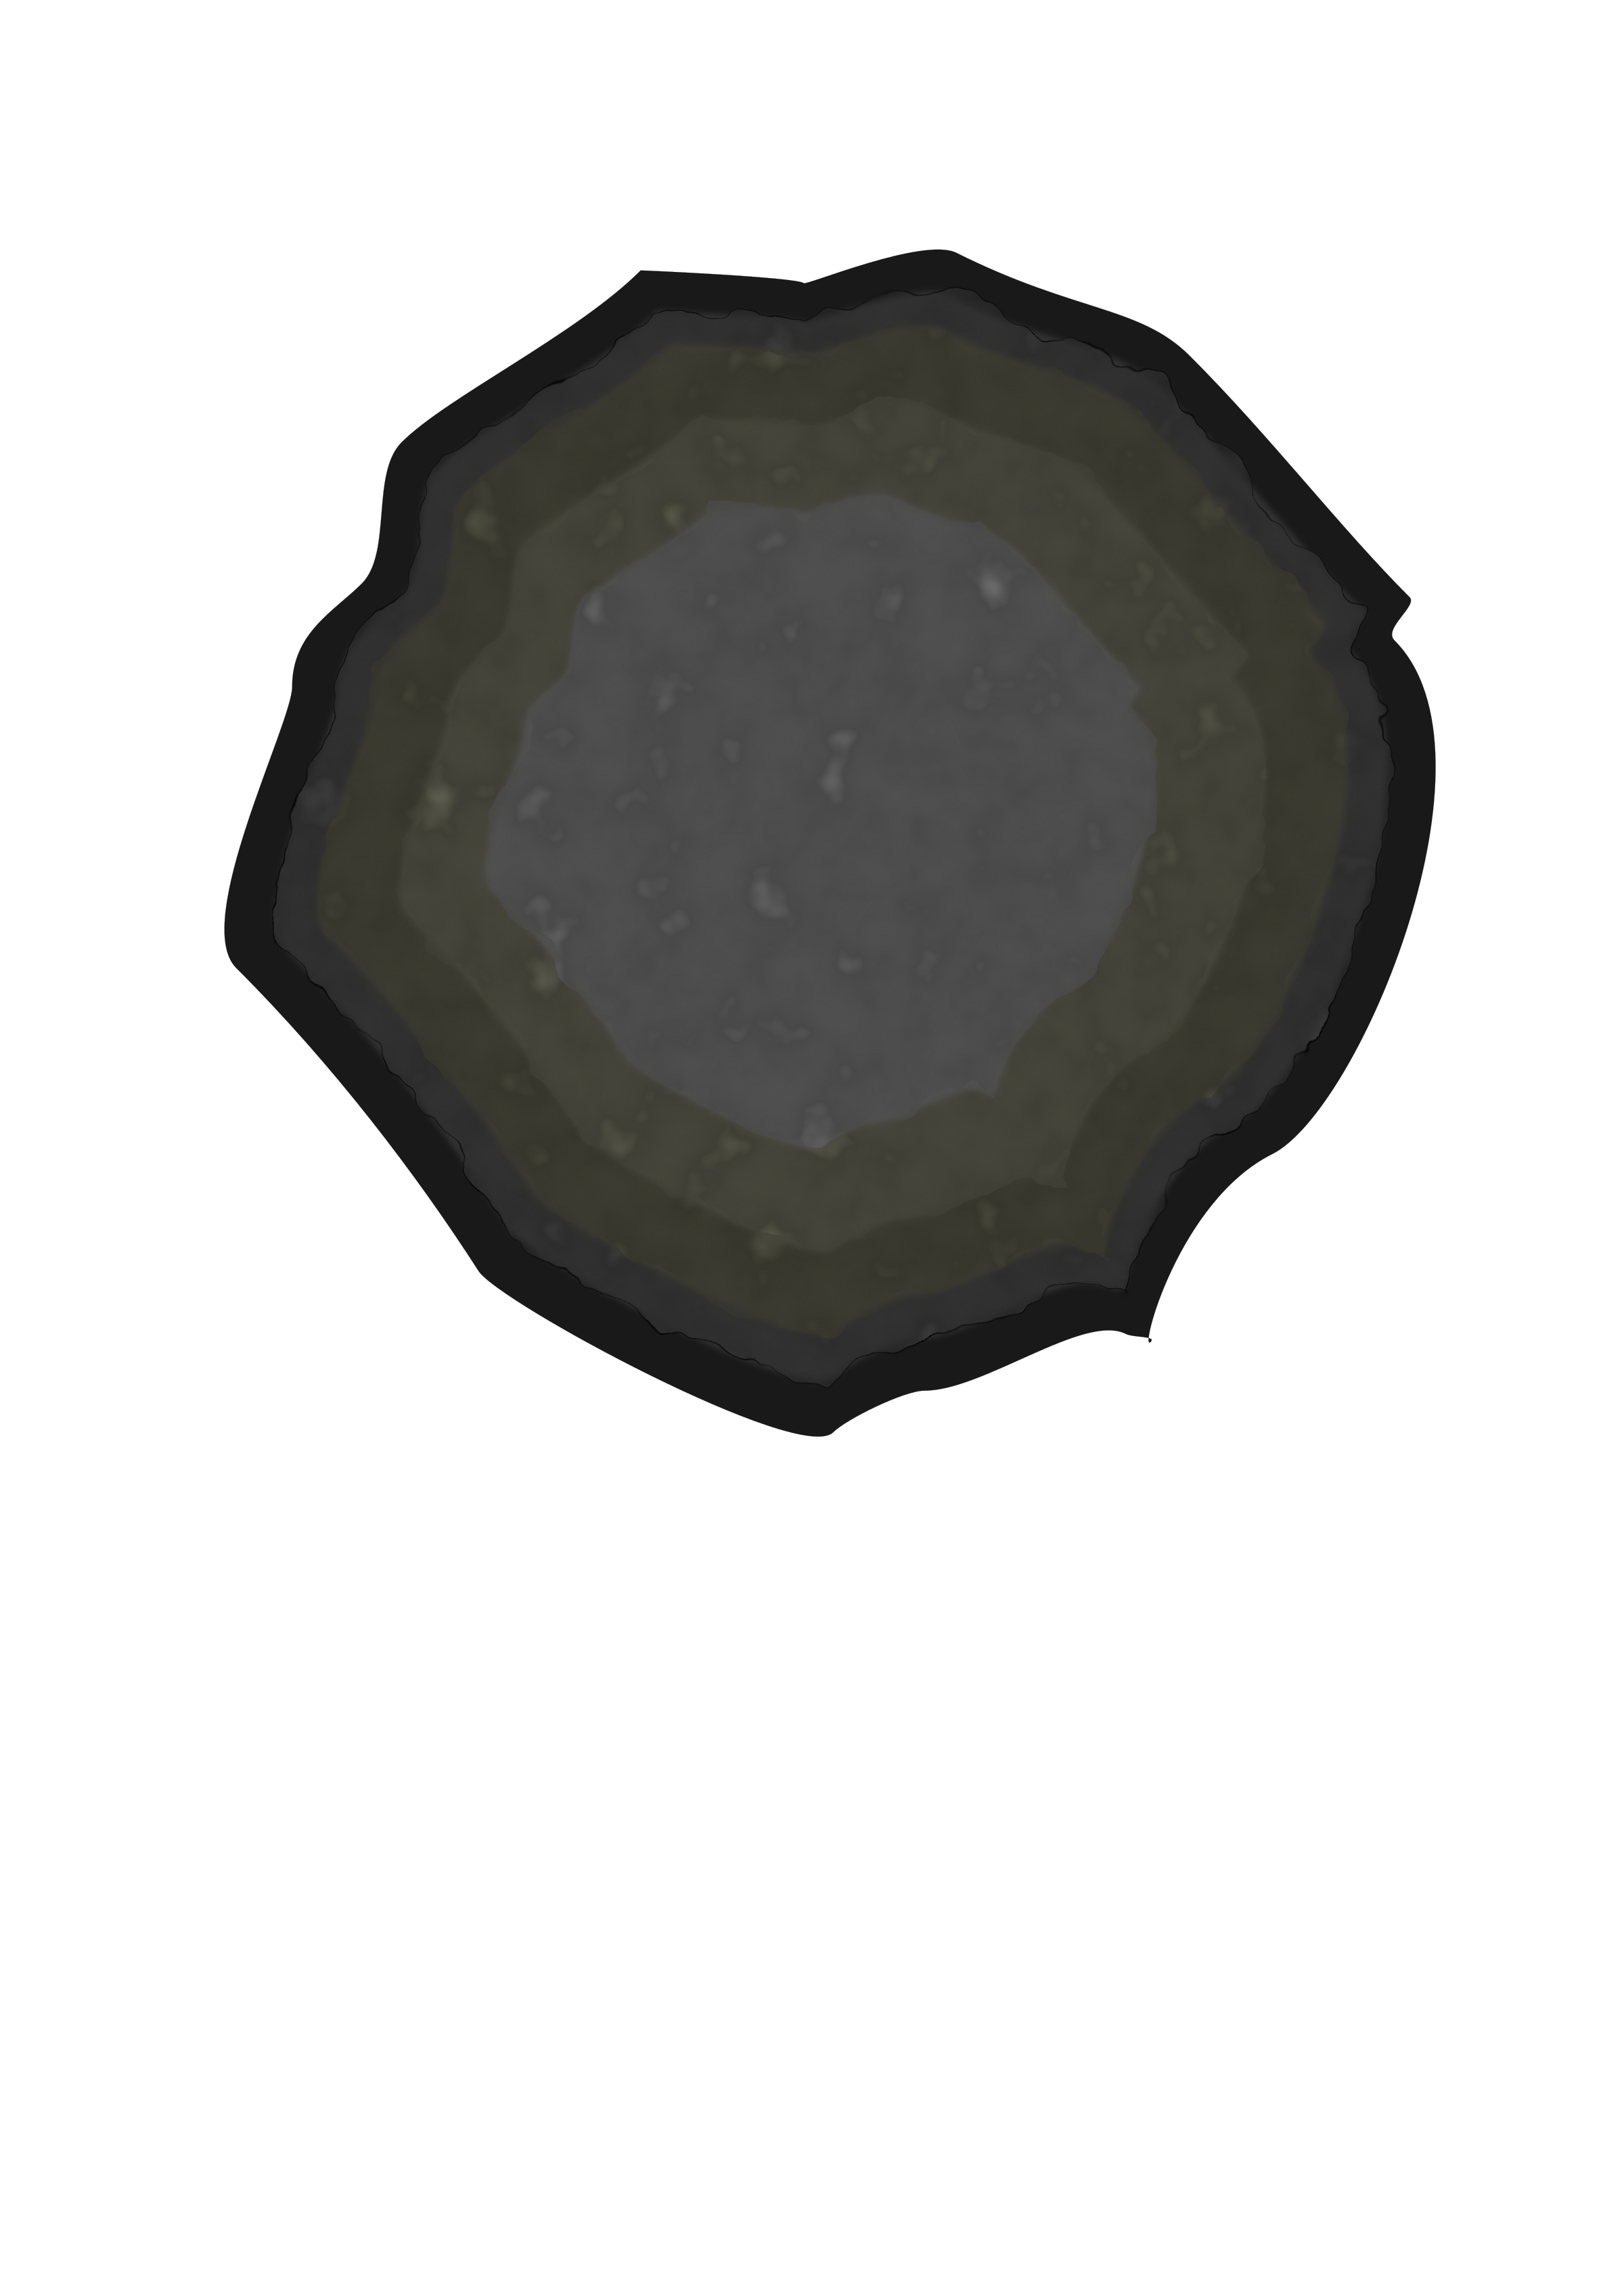 Asteroid clipart. Big image png